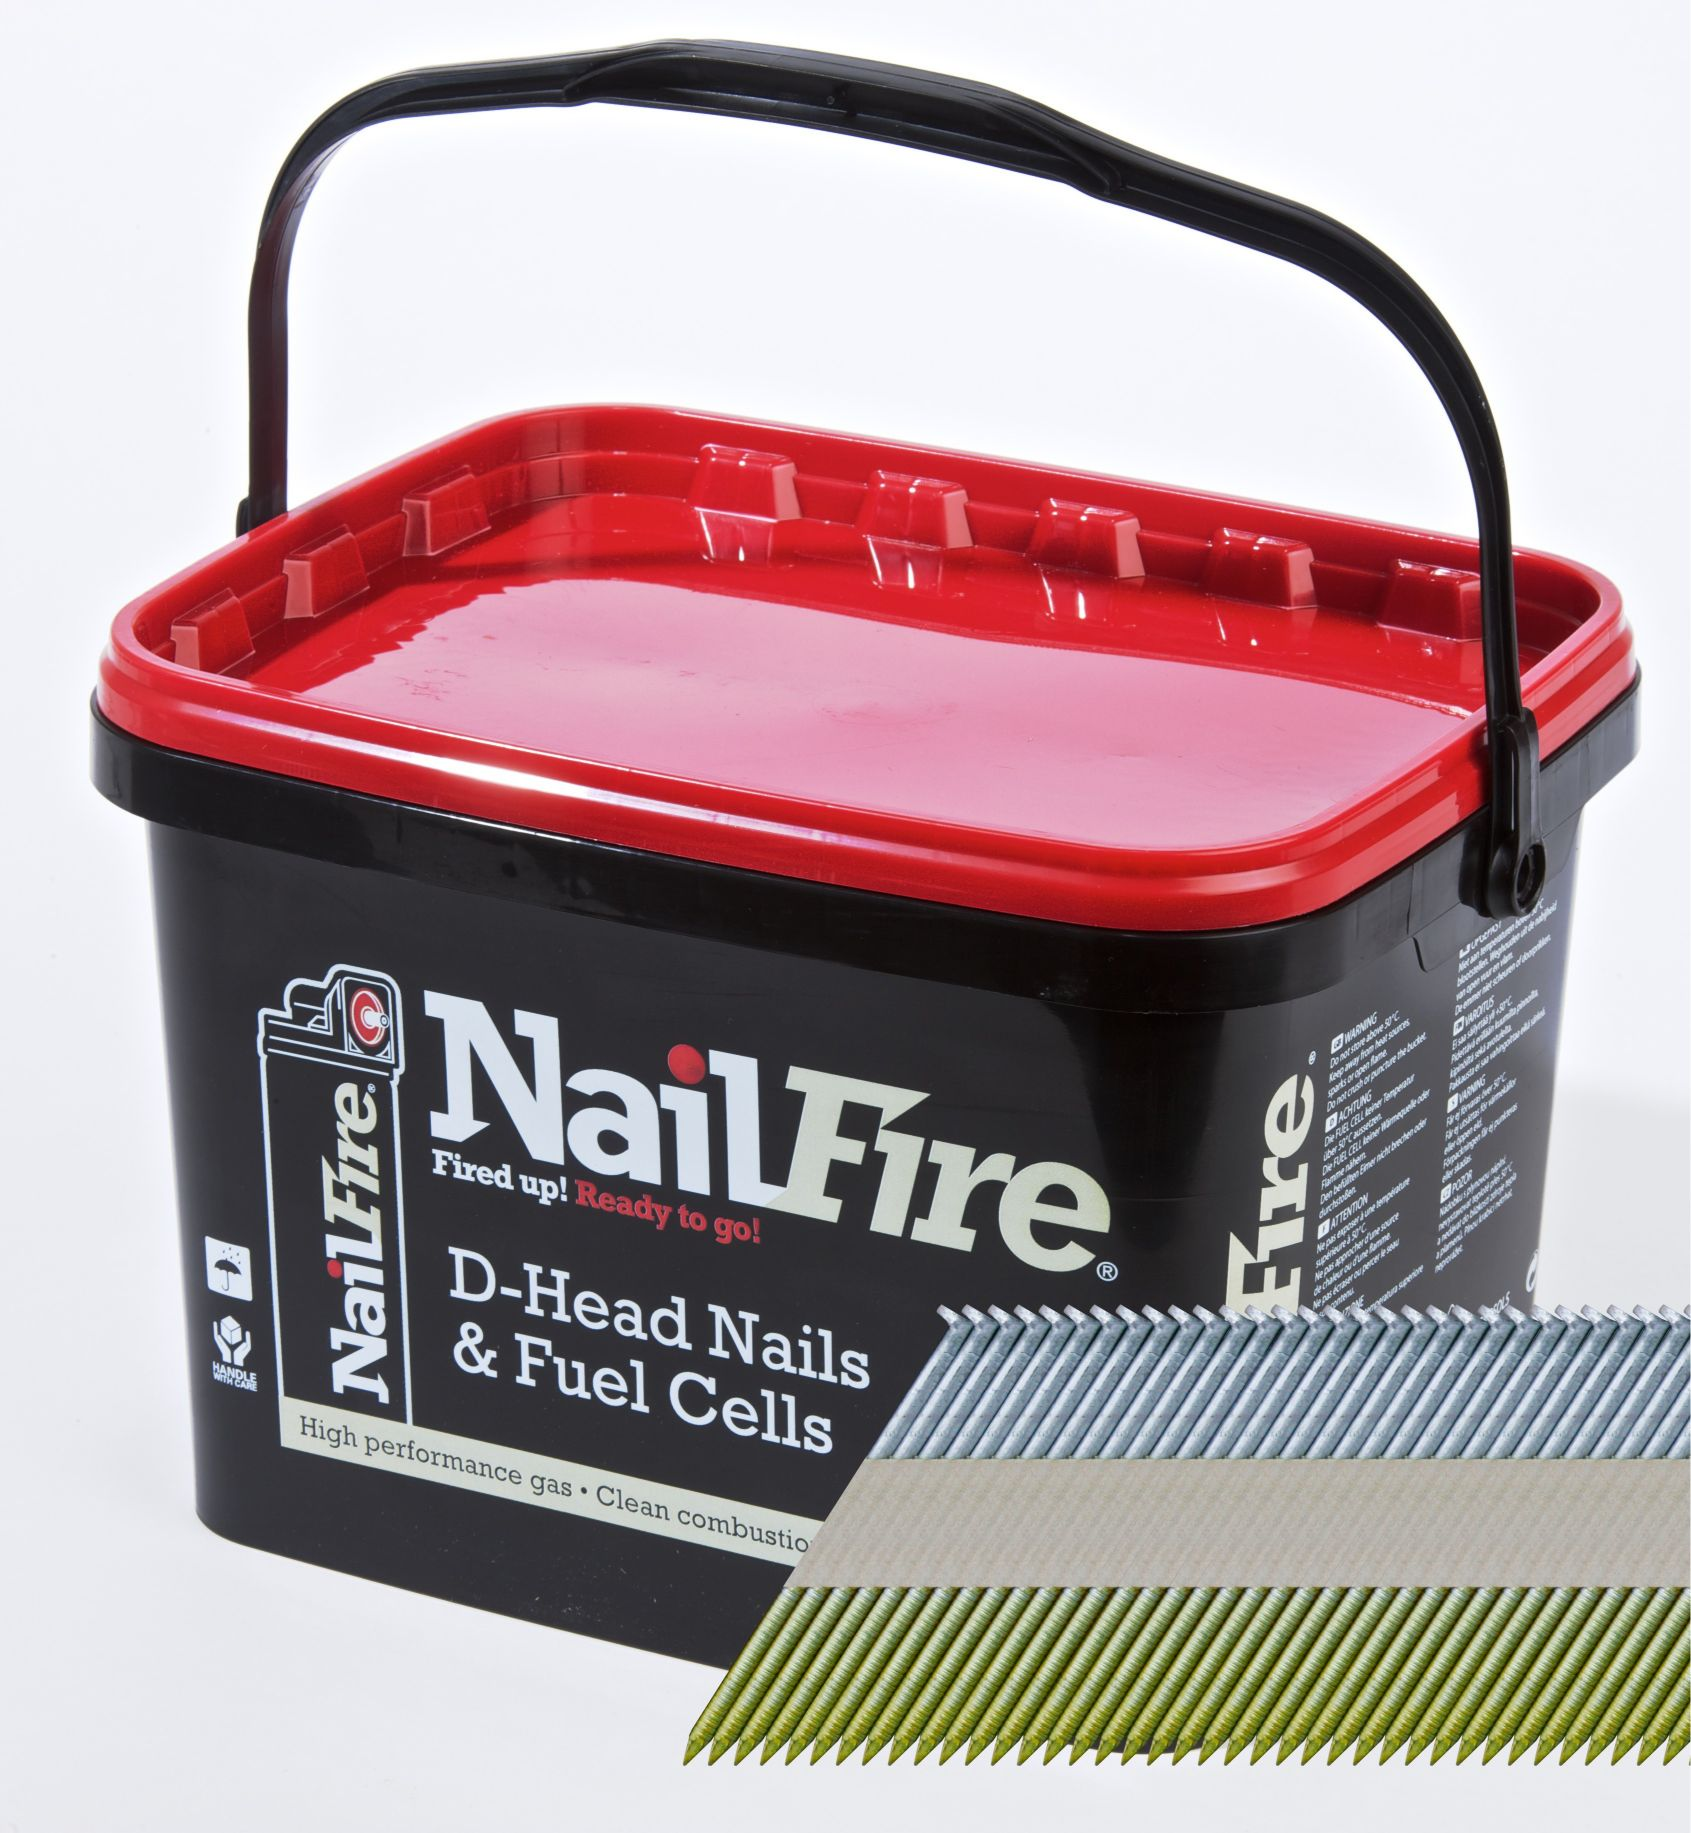 NAILFIRE 1ST FIX E-GALV RING NAIL & FUEL PACK 65MM (TUB OF 3000)